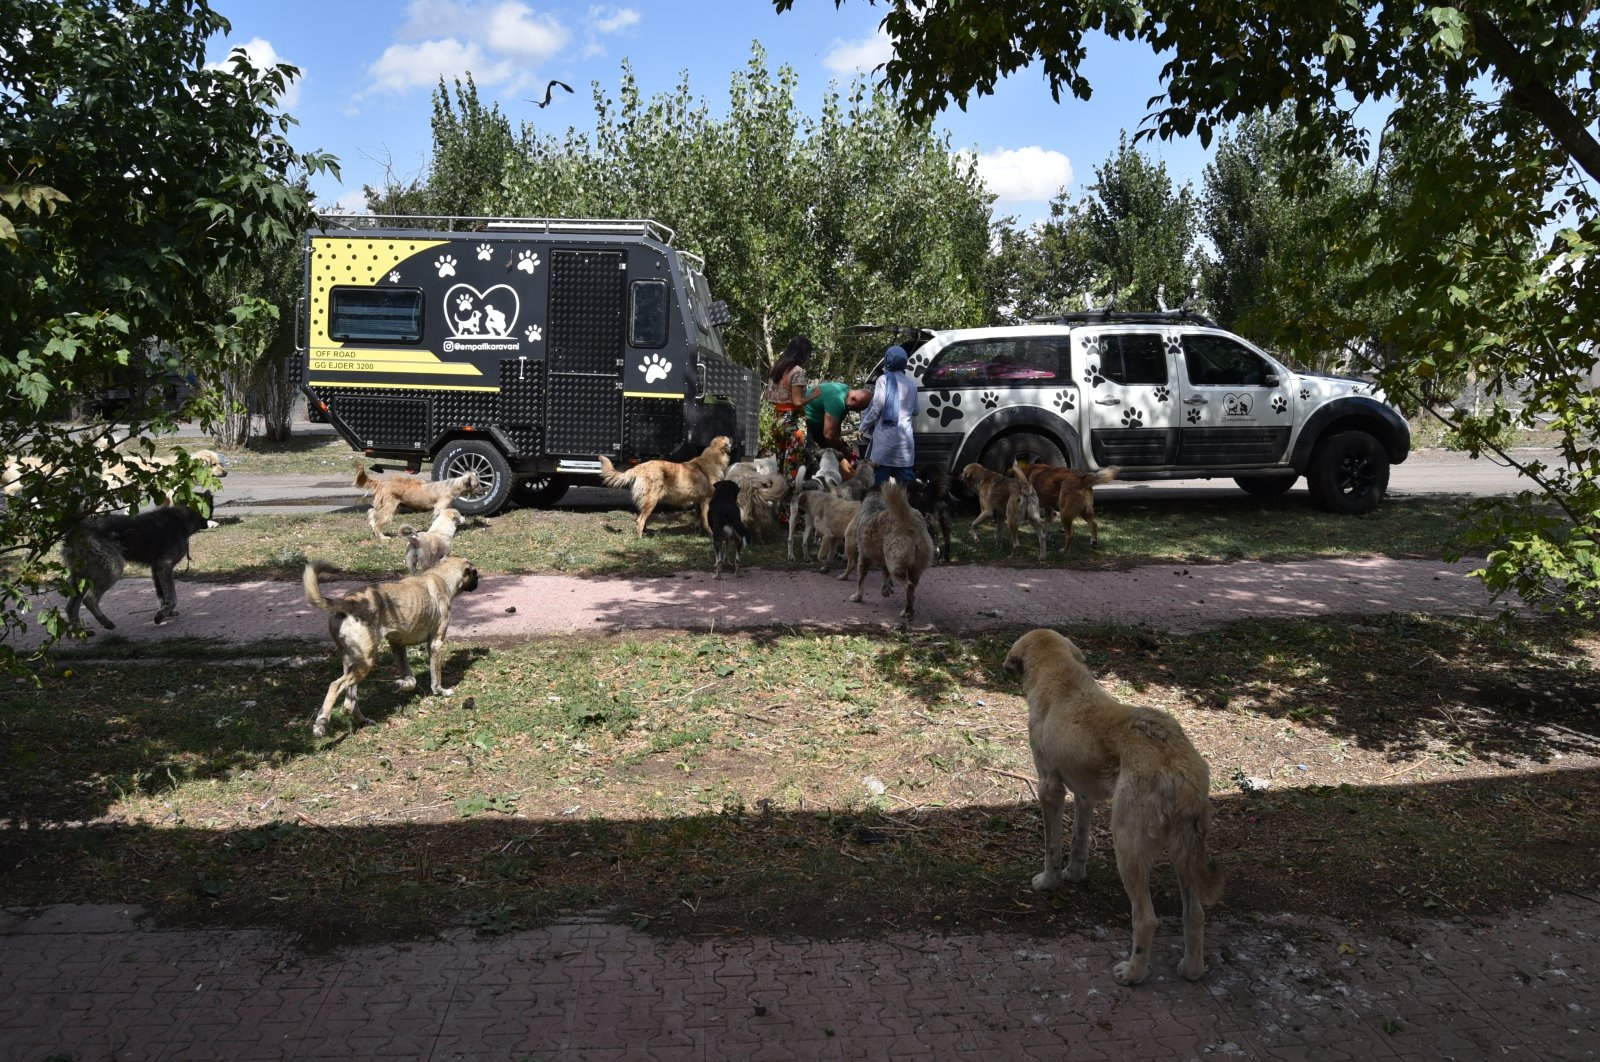 Dogs surround the trailer during food delivery, in Kars, eastern Turkey, Sept. 10, 2021. (AA PHOTO)